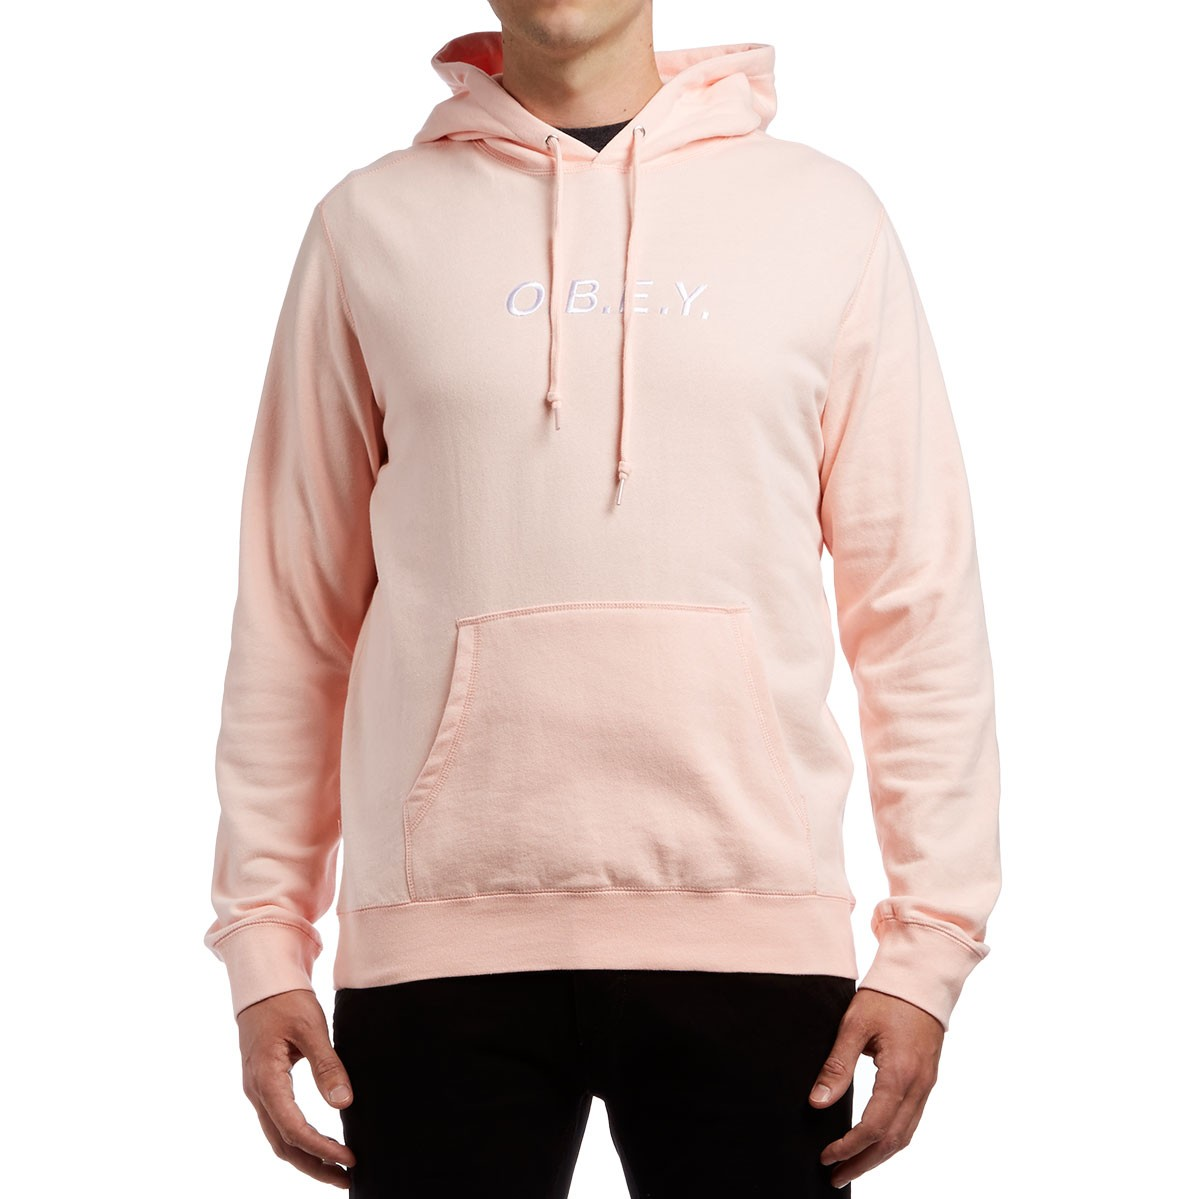 Obey Contorted Hoodie - Pink